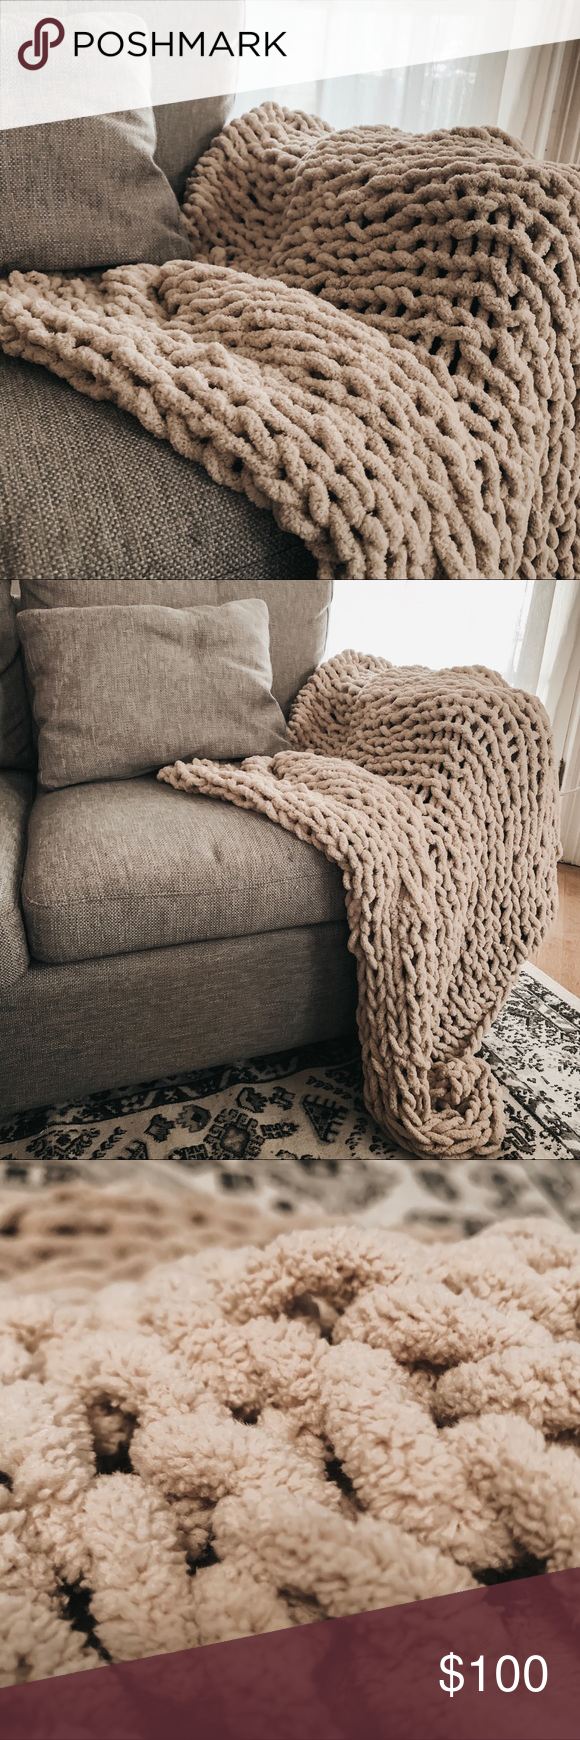 Chunky HandKnit Throw Blanket Length 65 Inches Width 35 Inches Material Cotton Polyester ABOUT Beige Sand colored chunky knit throw blanket is Chunky HandKnit Throw Blank...